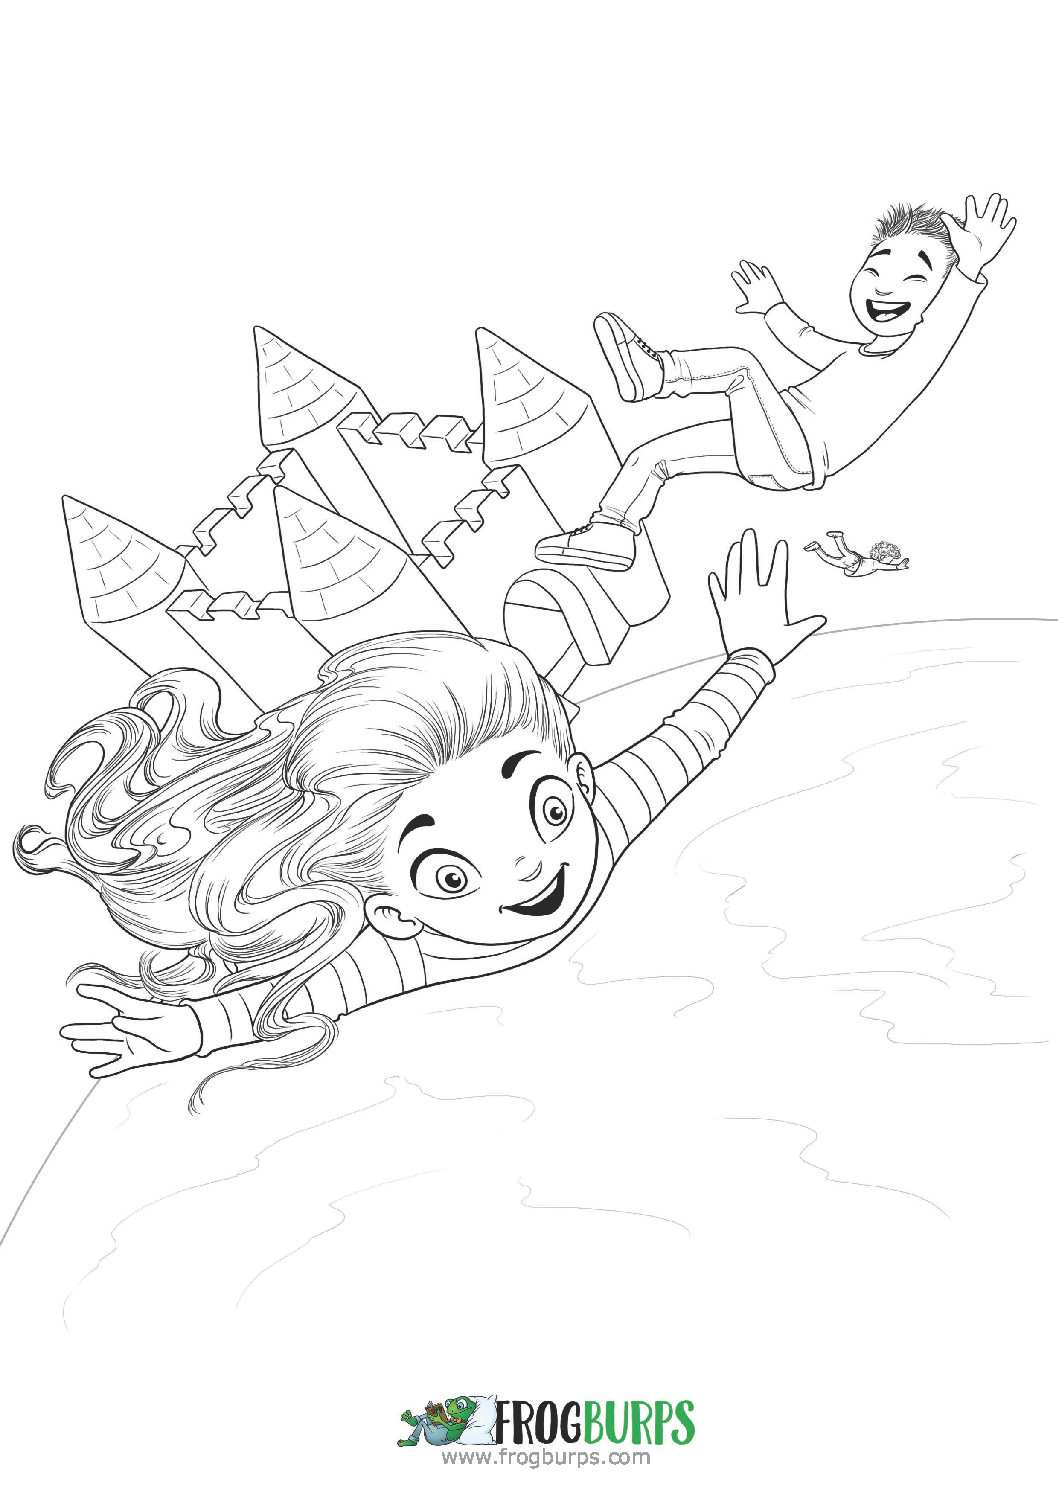 Bouncy Castle Trampoline Coloring Page Frogburps